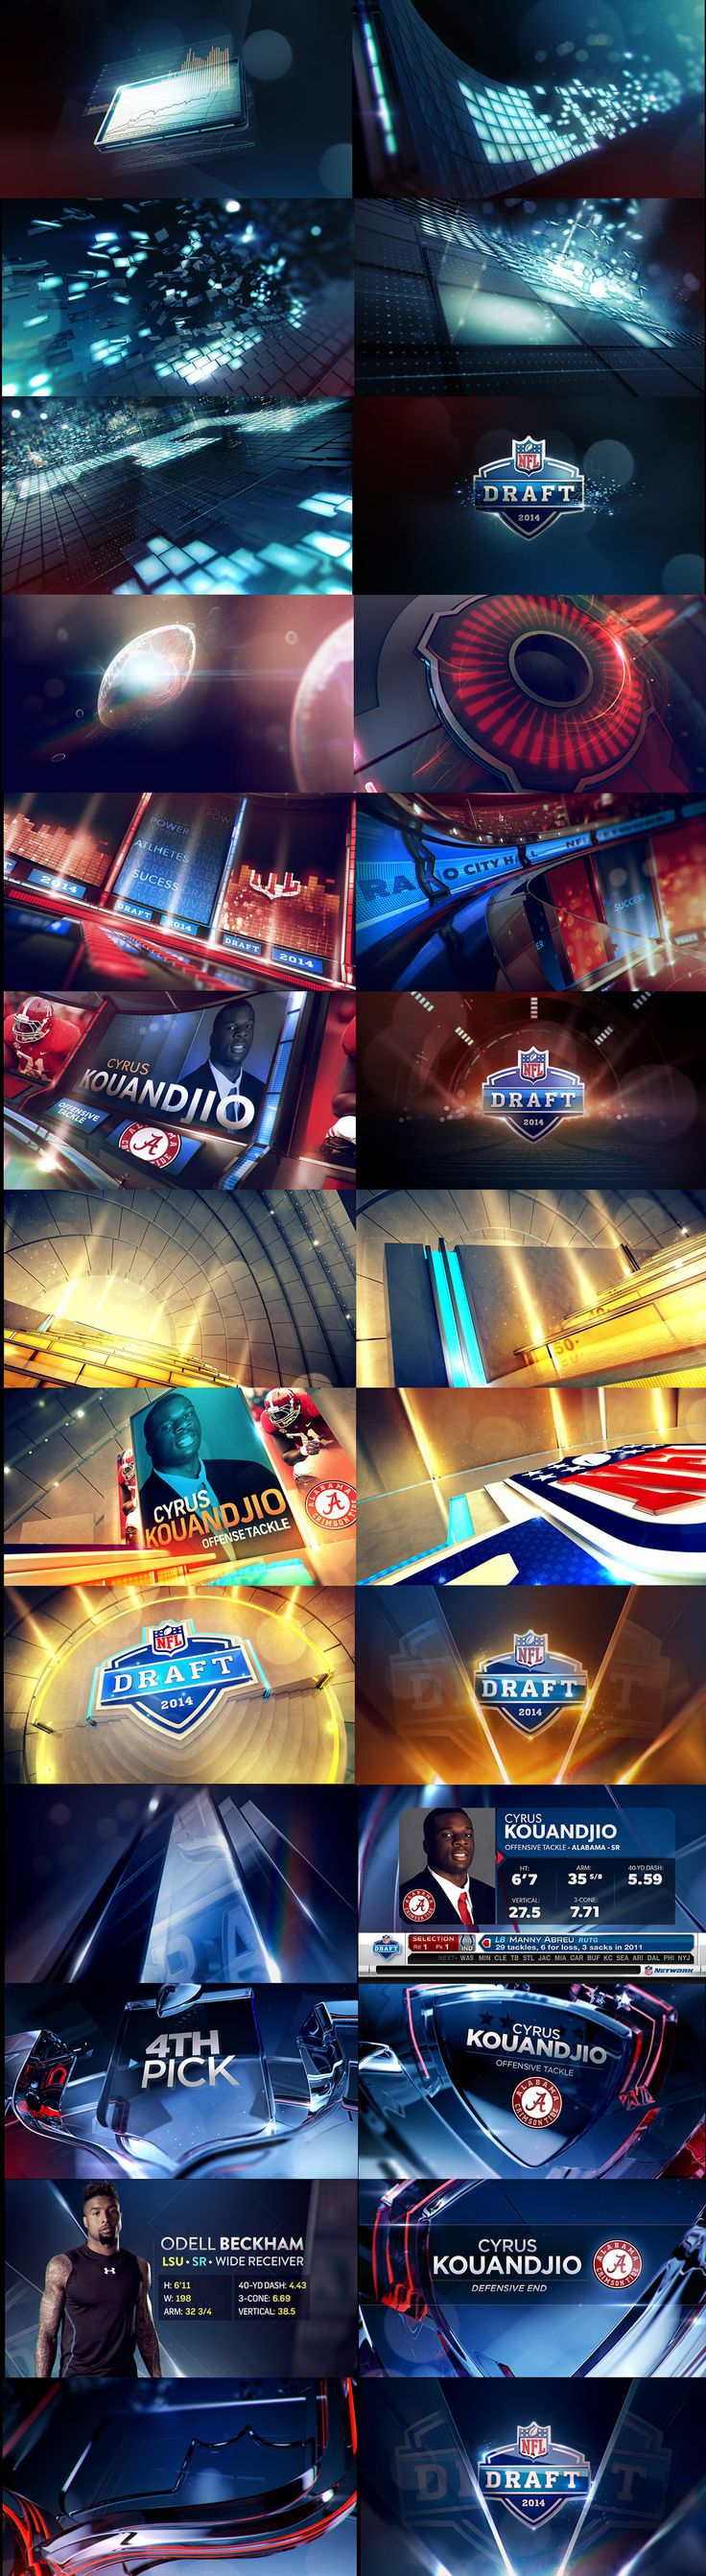 NFL DRAFT_ 2014_ CONCEPTS on Behance